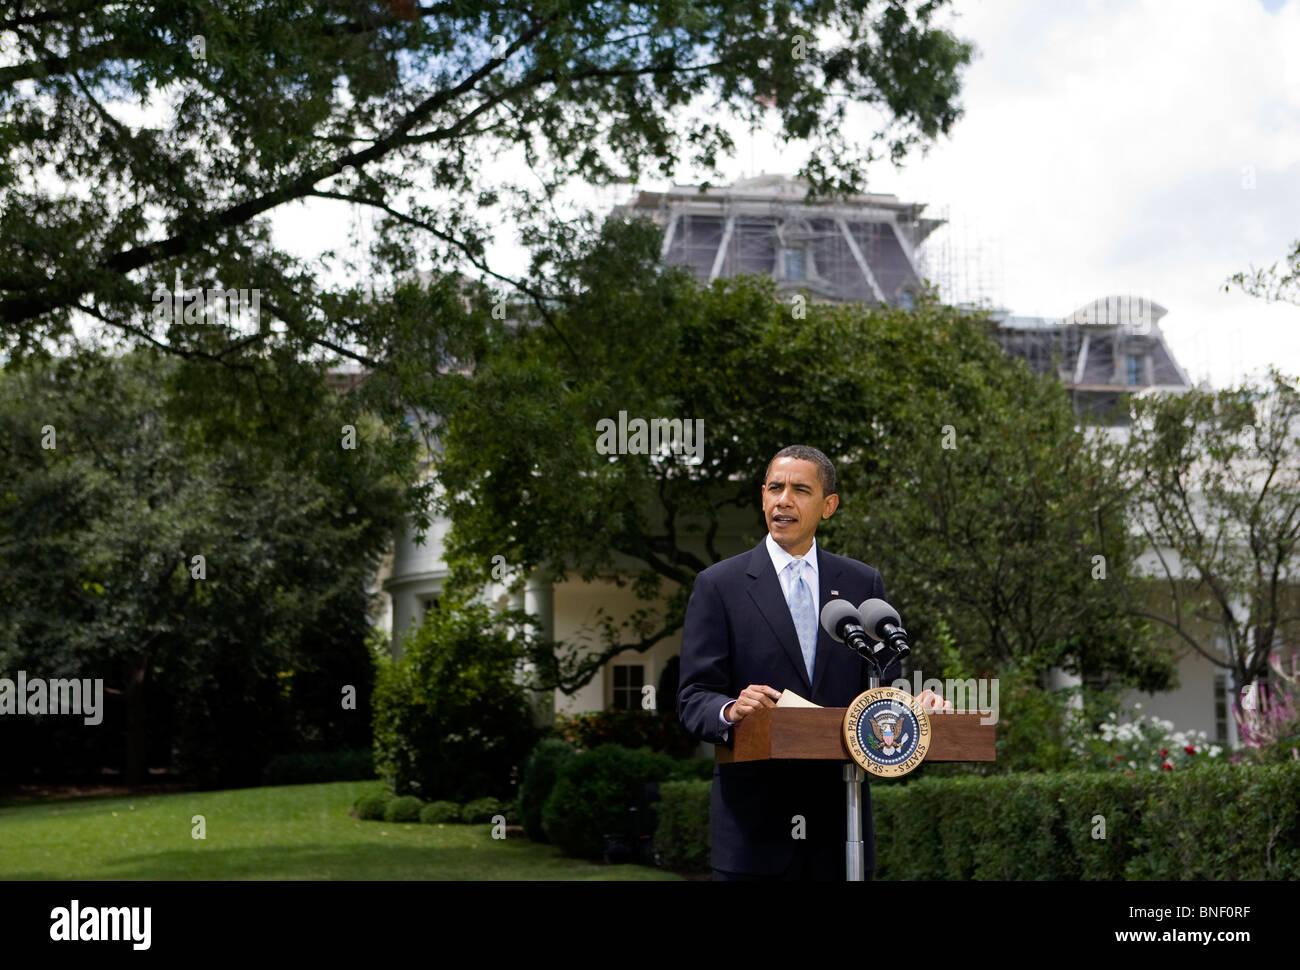 President Barack Obama Speaks on the South Lawn of the White House - Stock Image